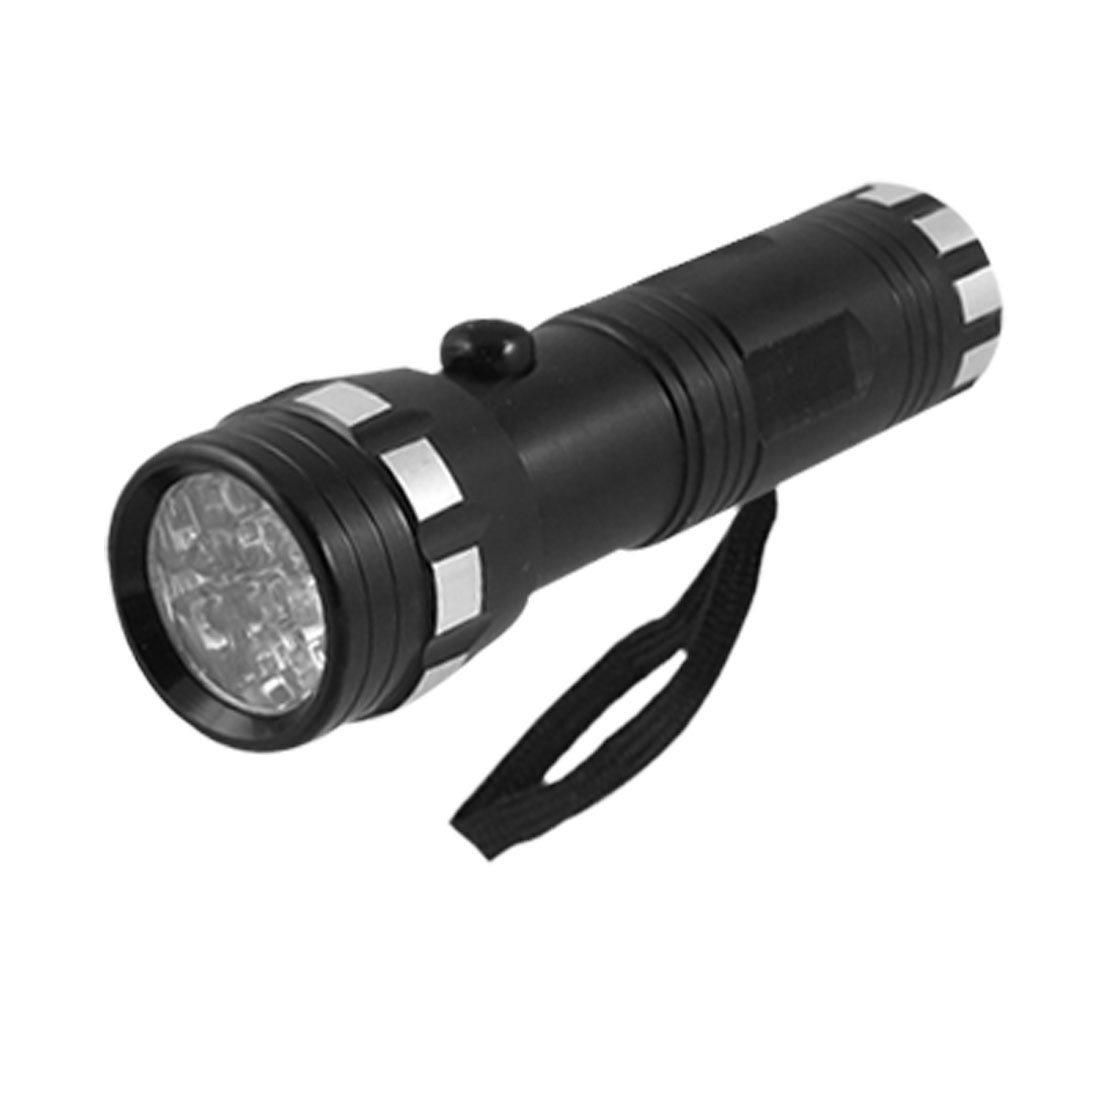 "4.8"" Length Black Aluminum Shell White LED Flashlight"